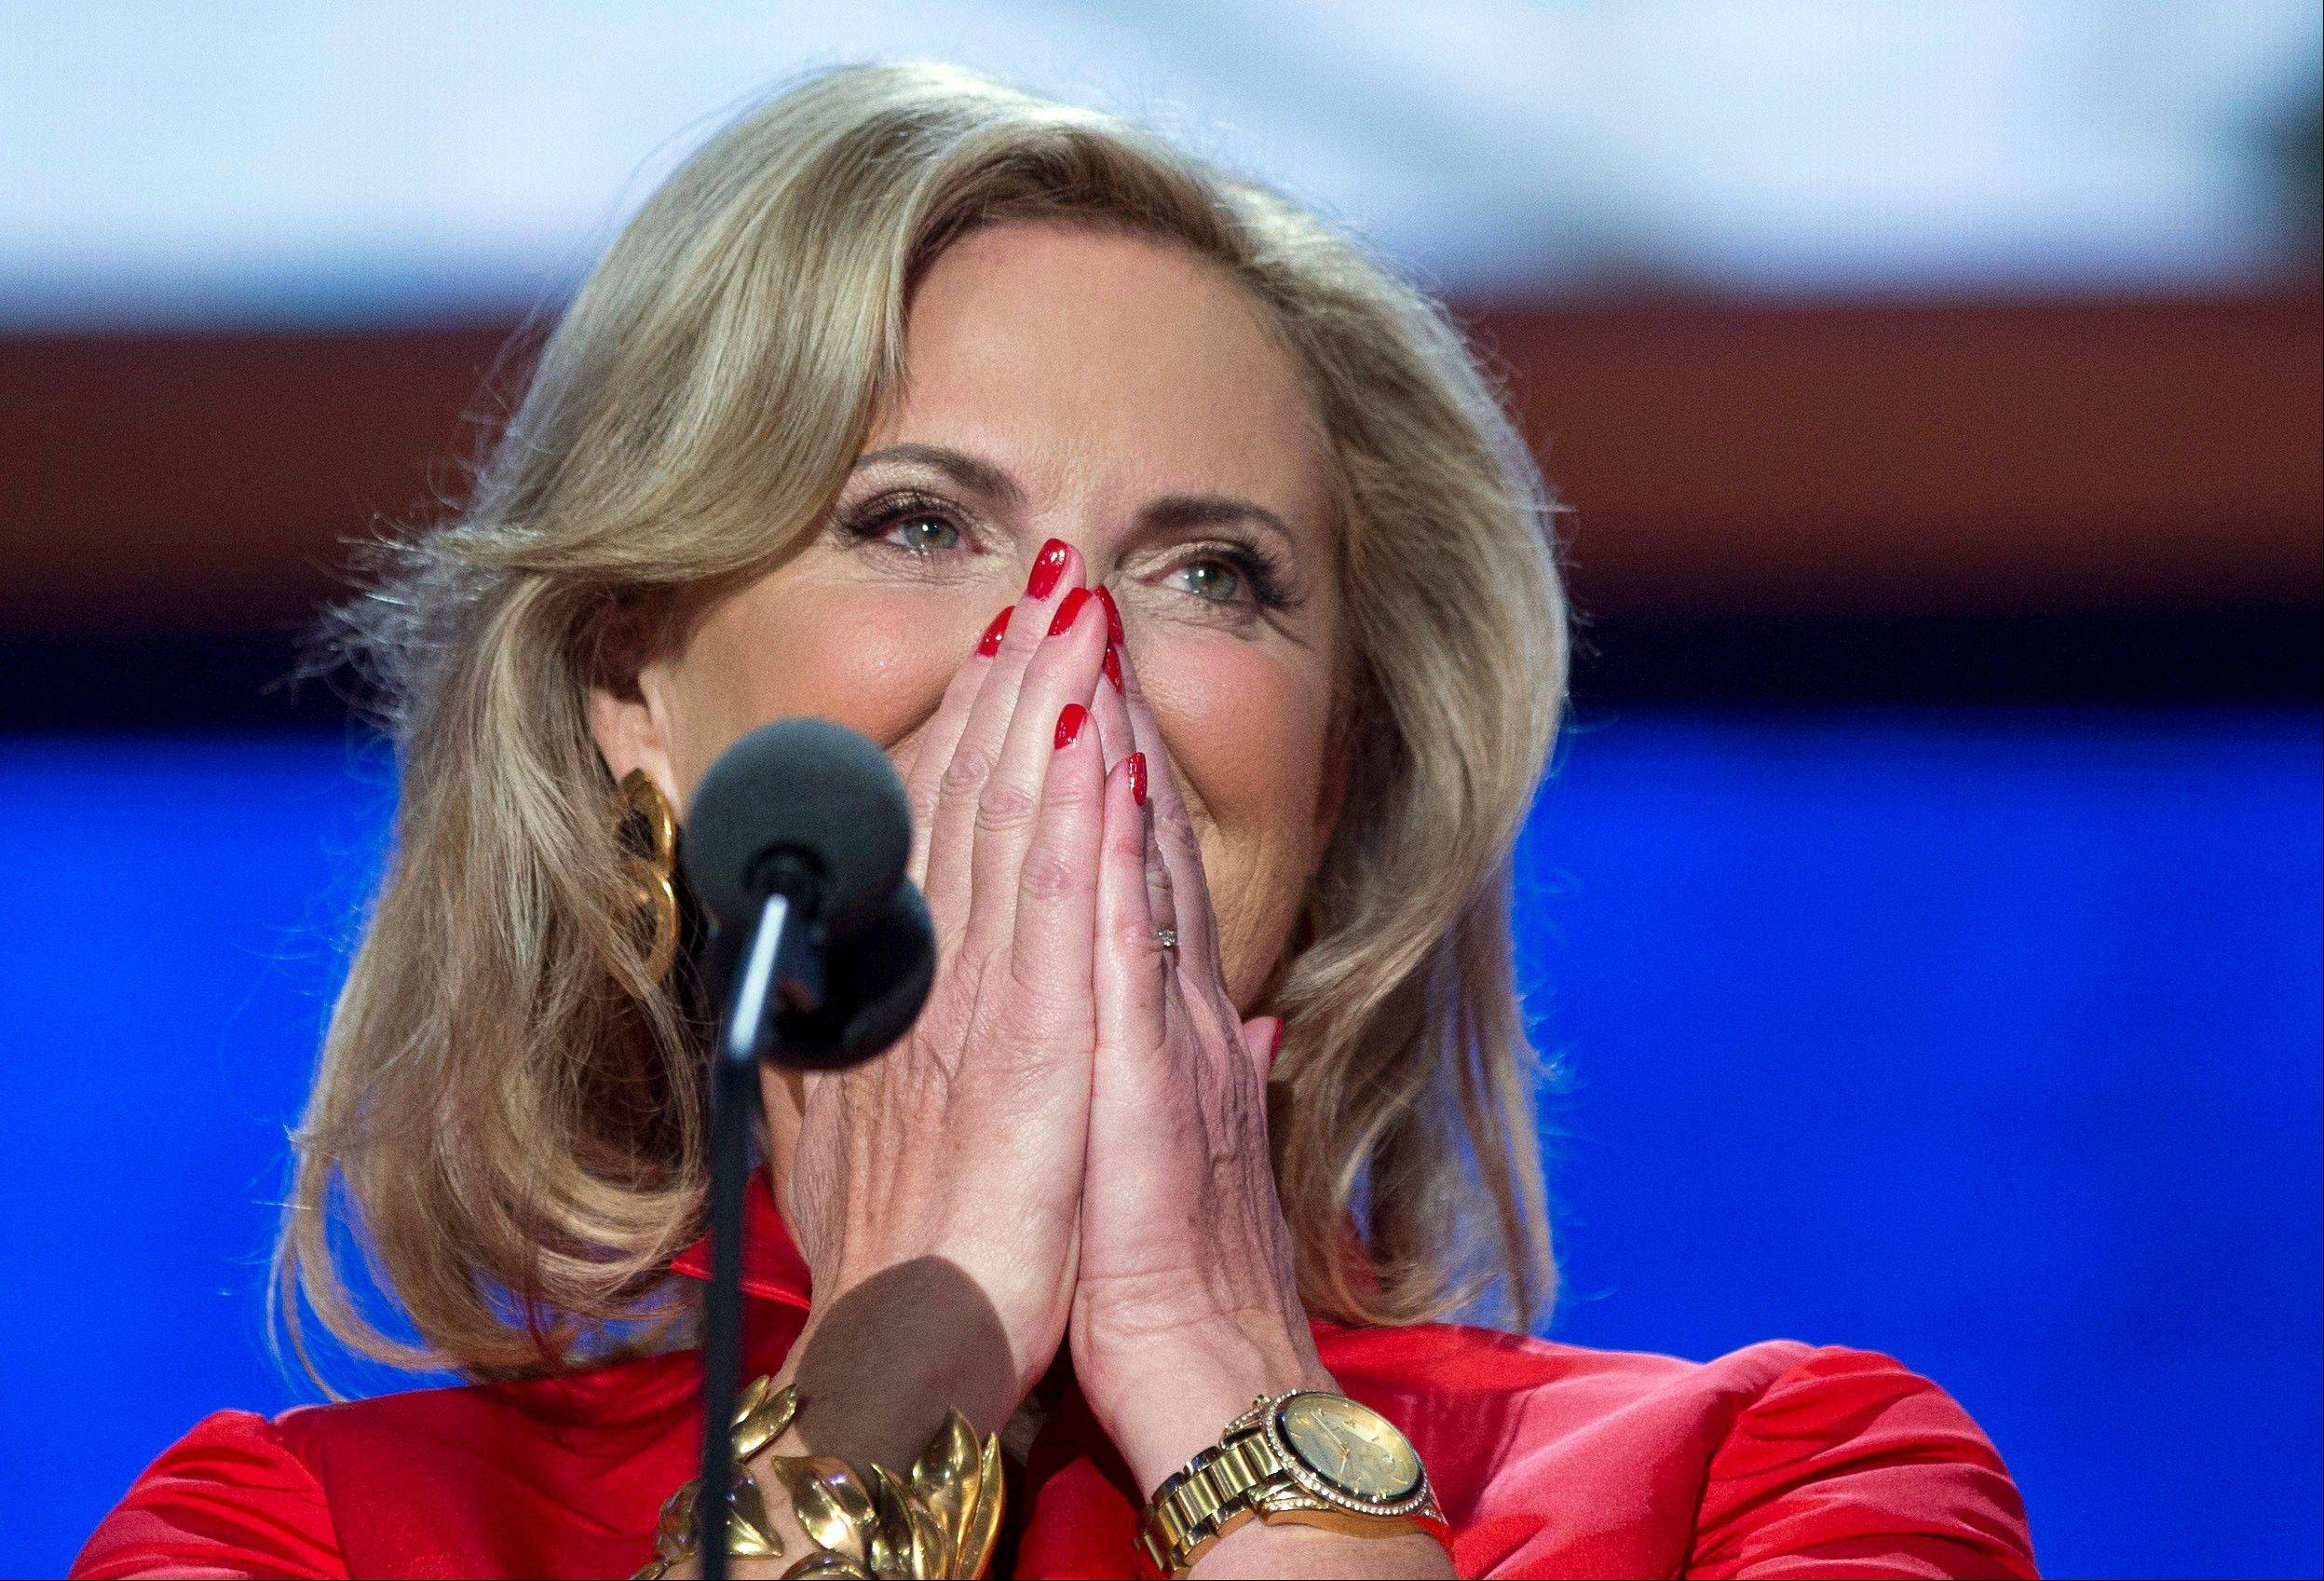 Ann Romney, wife of Republican presidential candidate, former Massachusetts Gov. Mitt Romney, spoke before the convention Tuesday and shared intimate details of their marriage.